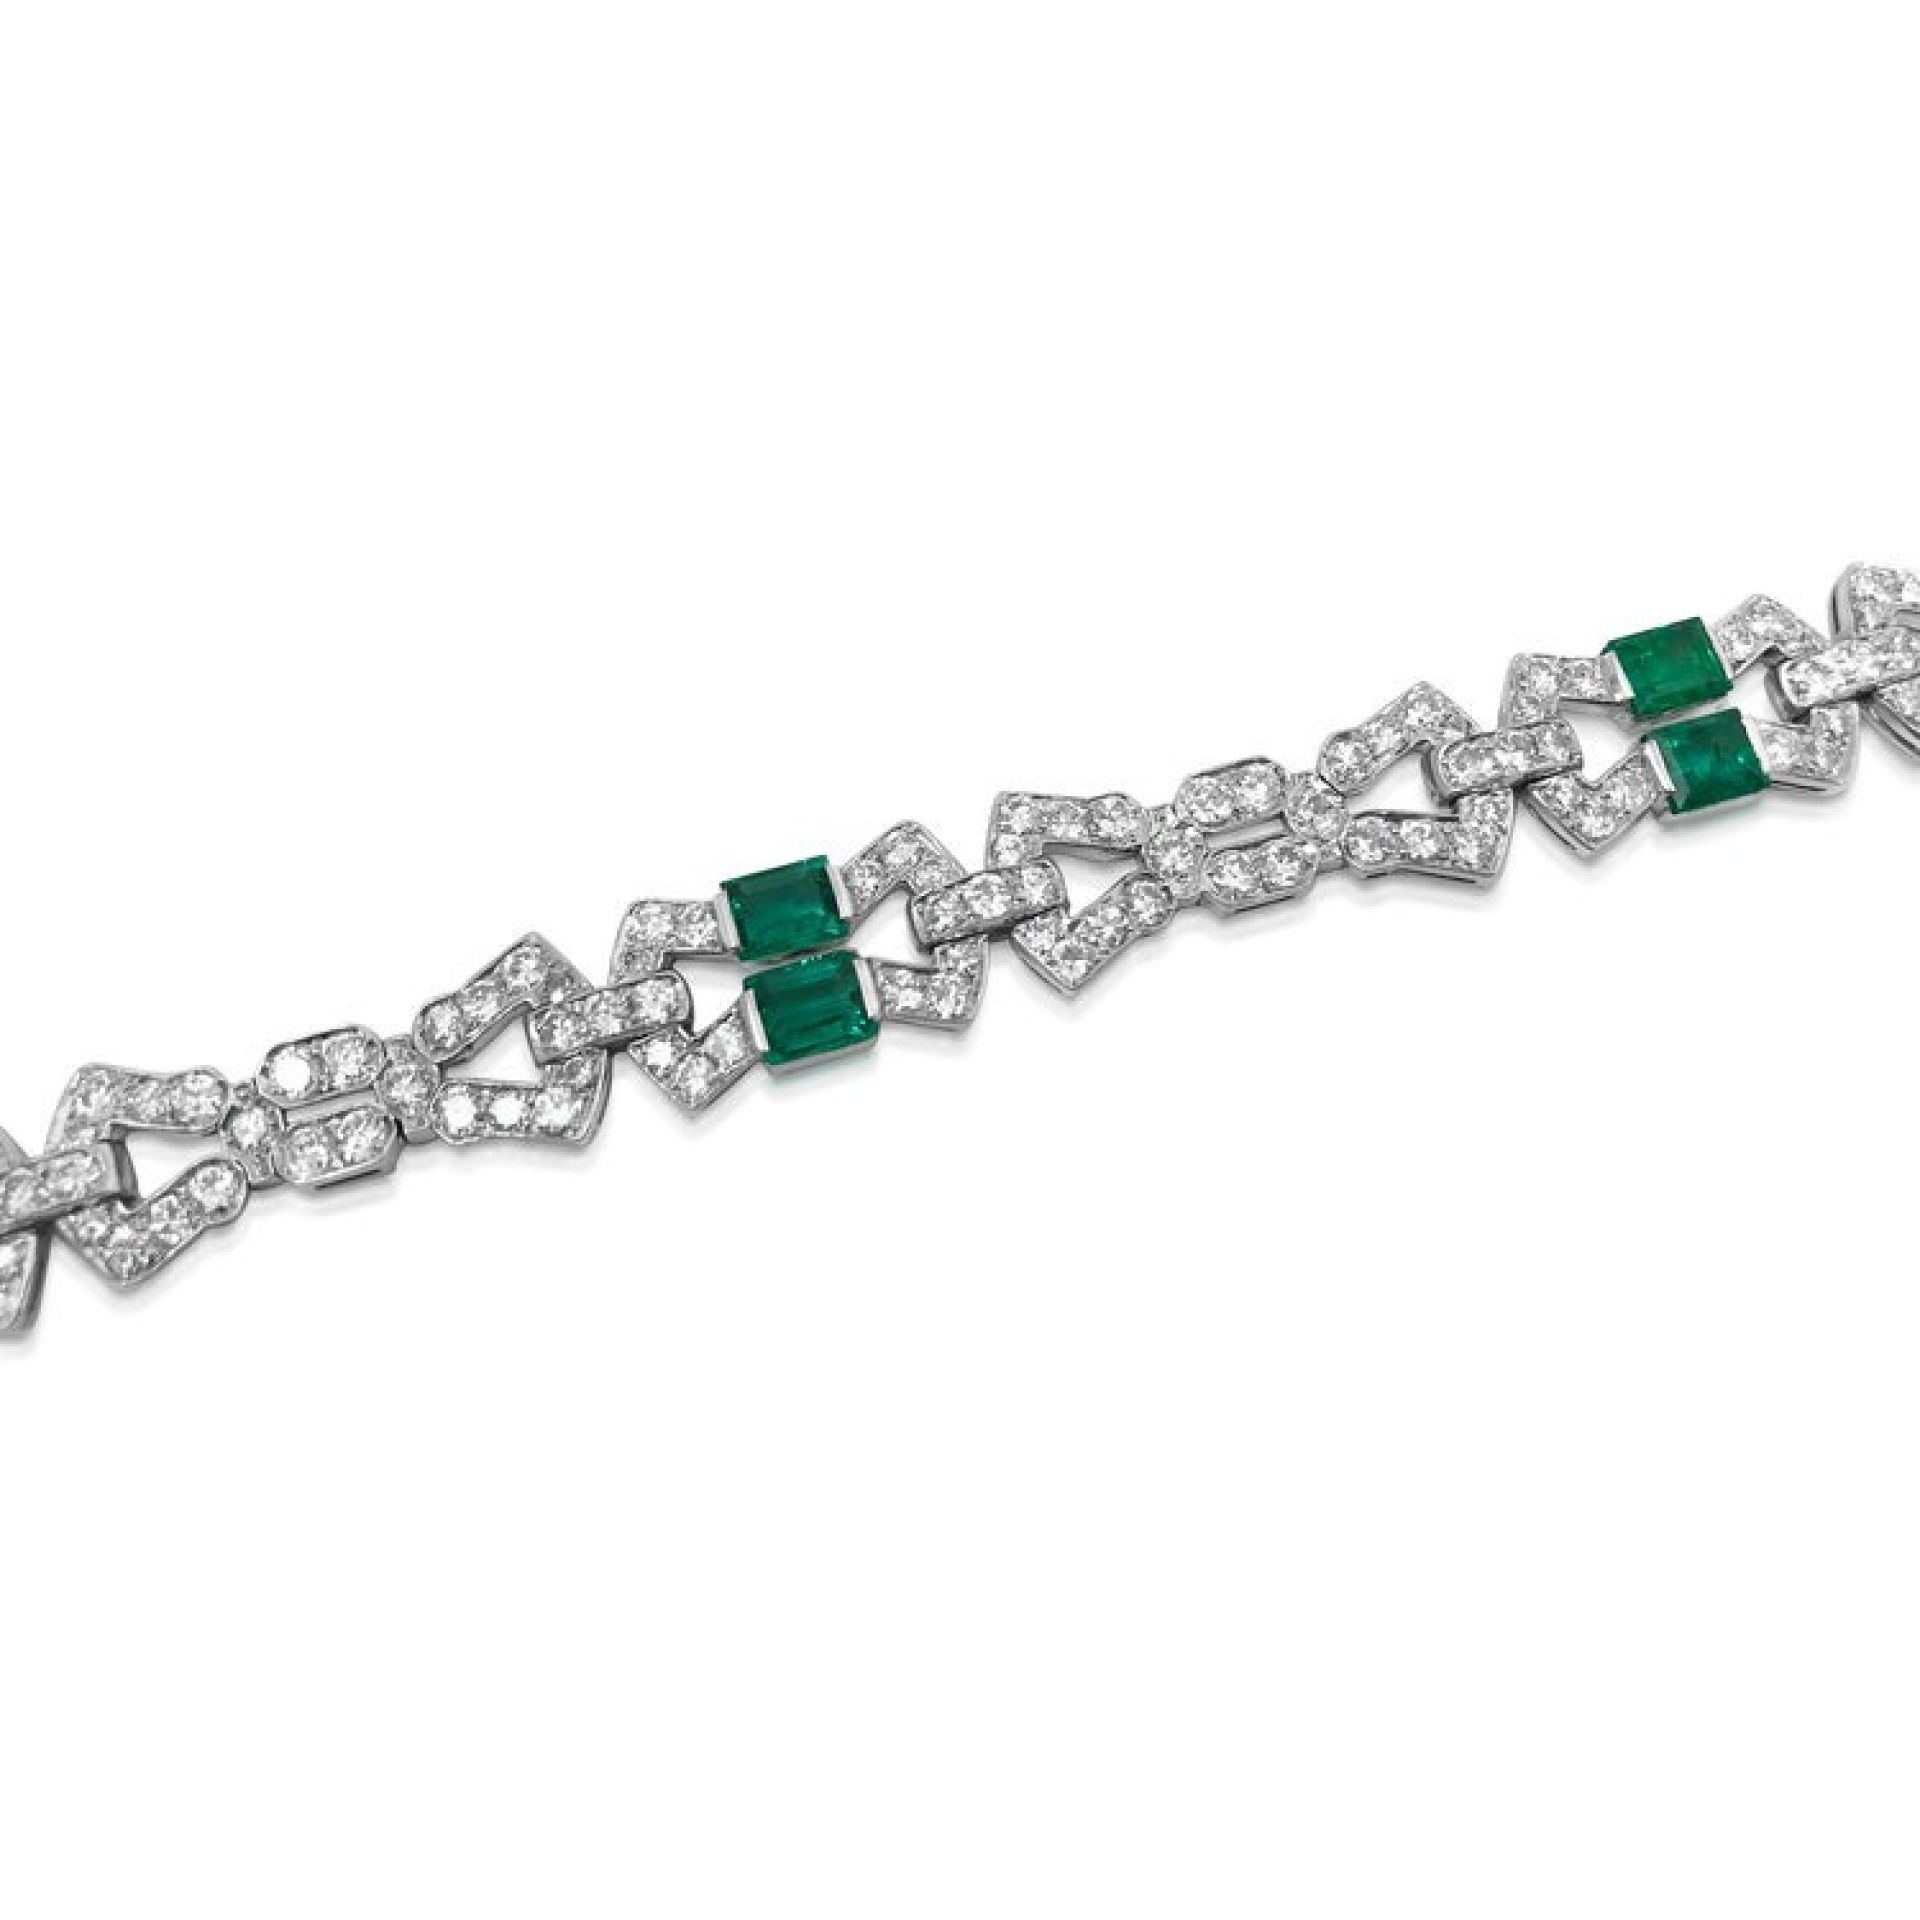 AN ART DECO EMERALD AND DIAMOND BRACELET, BY CHARLES HOLL.